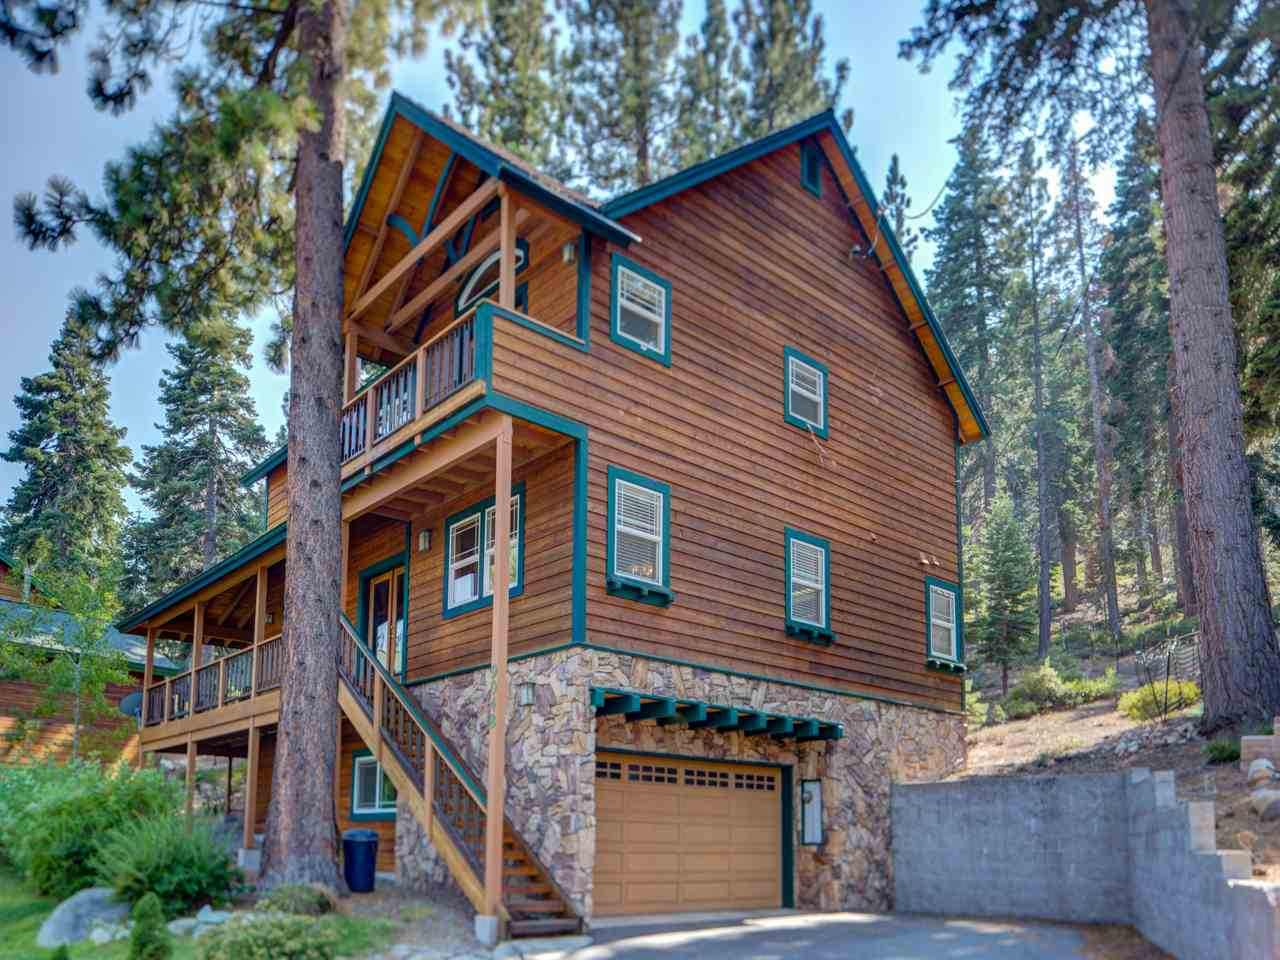 Image for 9048 Scenic Drive, South Lake Tahoe, CA 96150